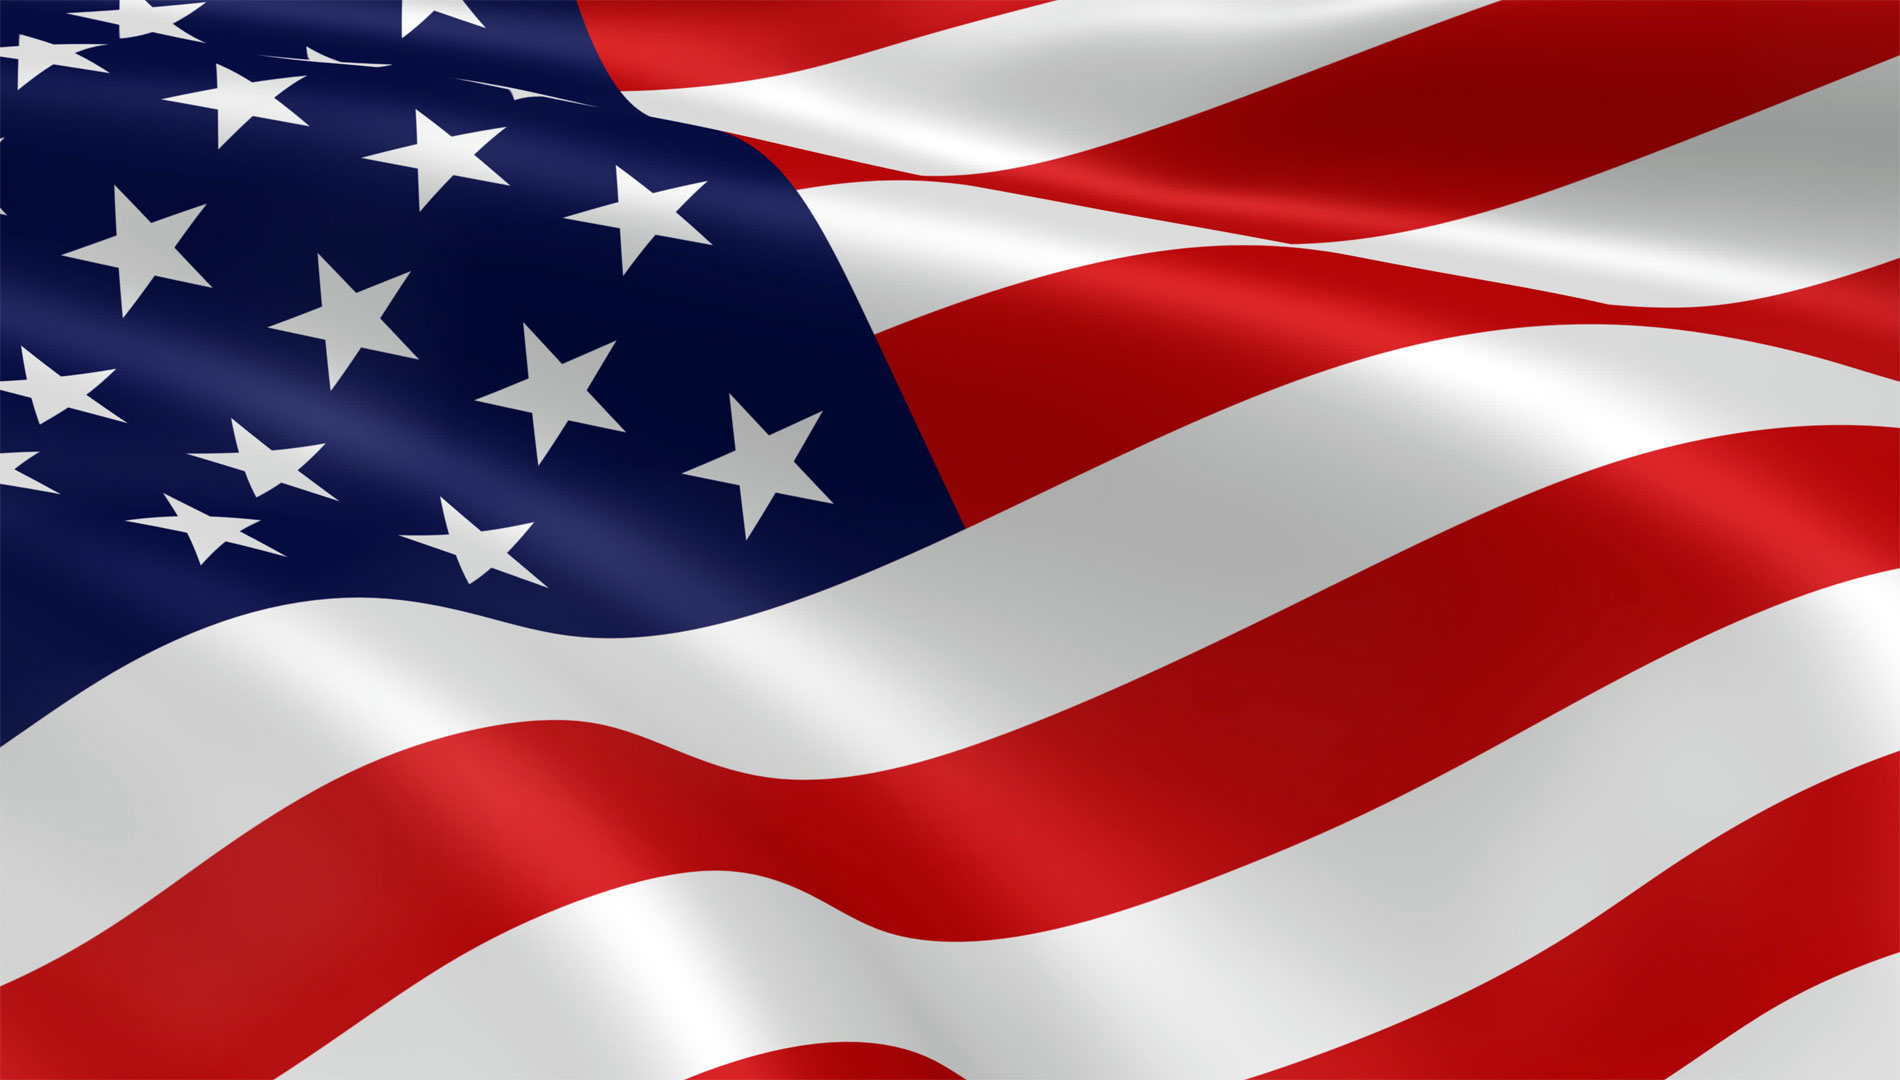 american flag hd images and wallpapers free download atulhost